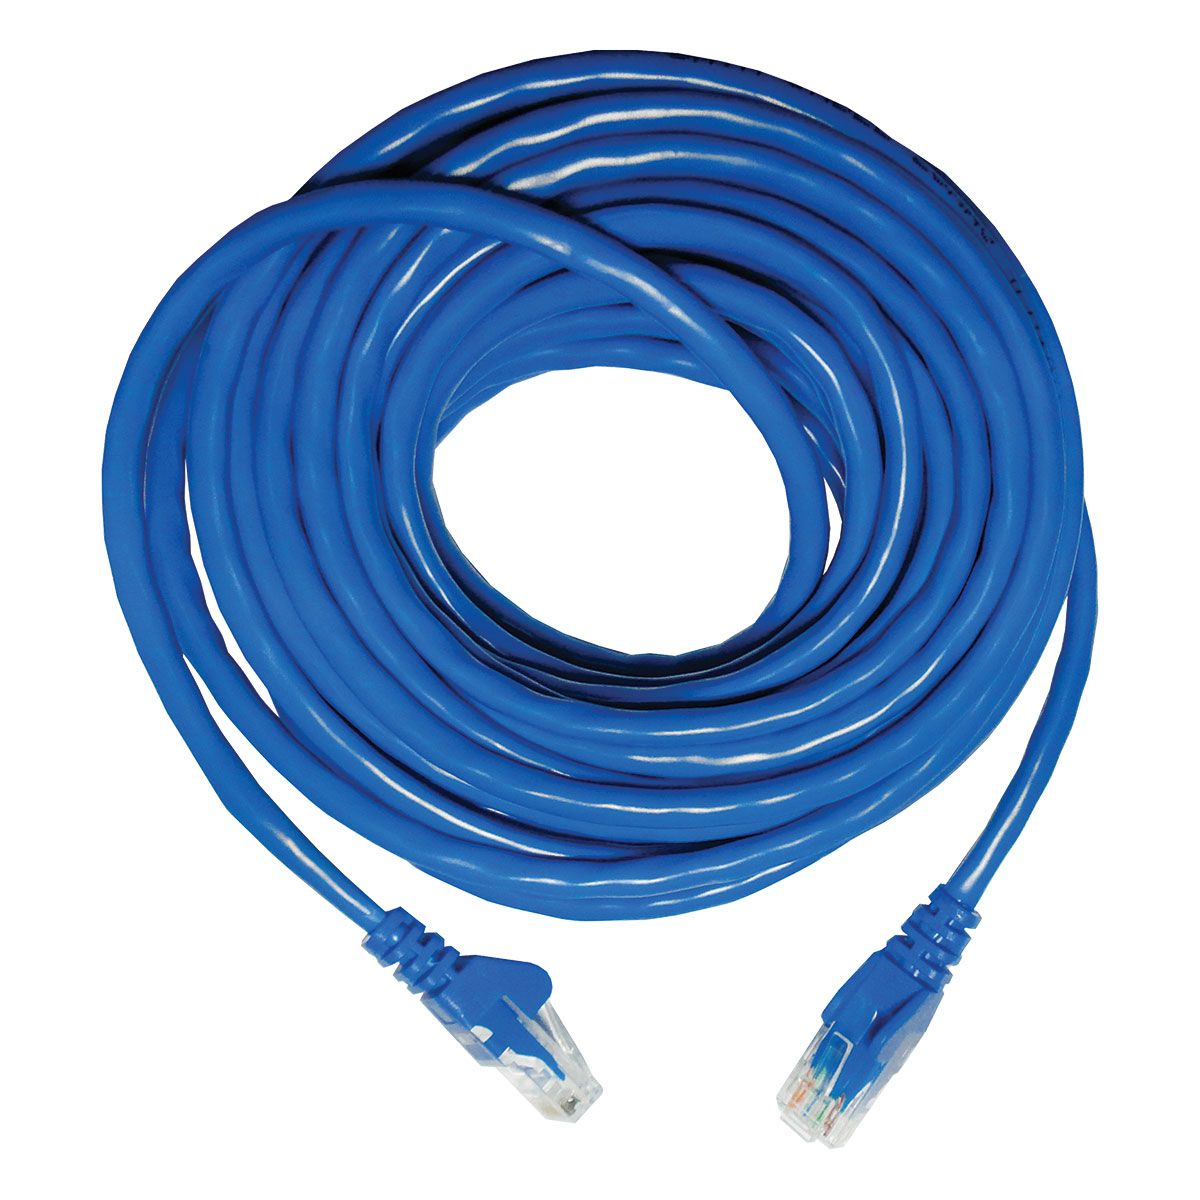 Patch Cord UTP CAT5 26AWG 10 Metros Azul 27679 - Seccon